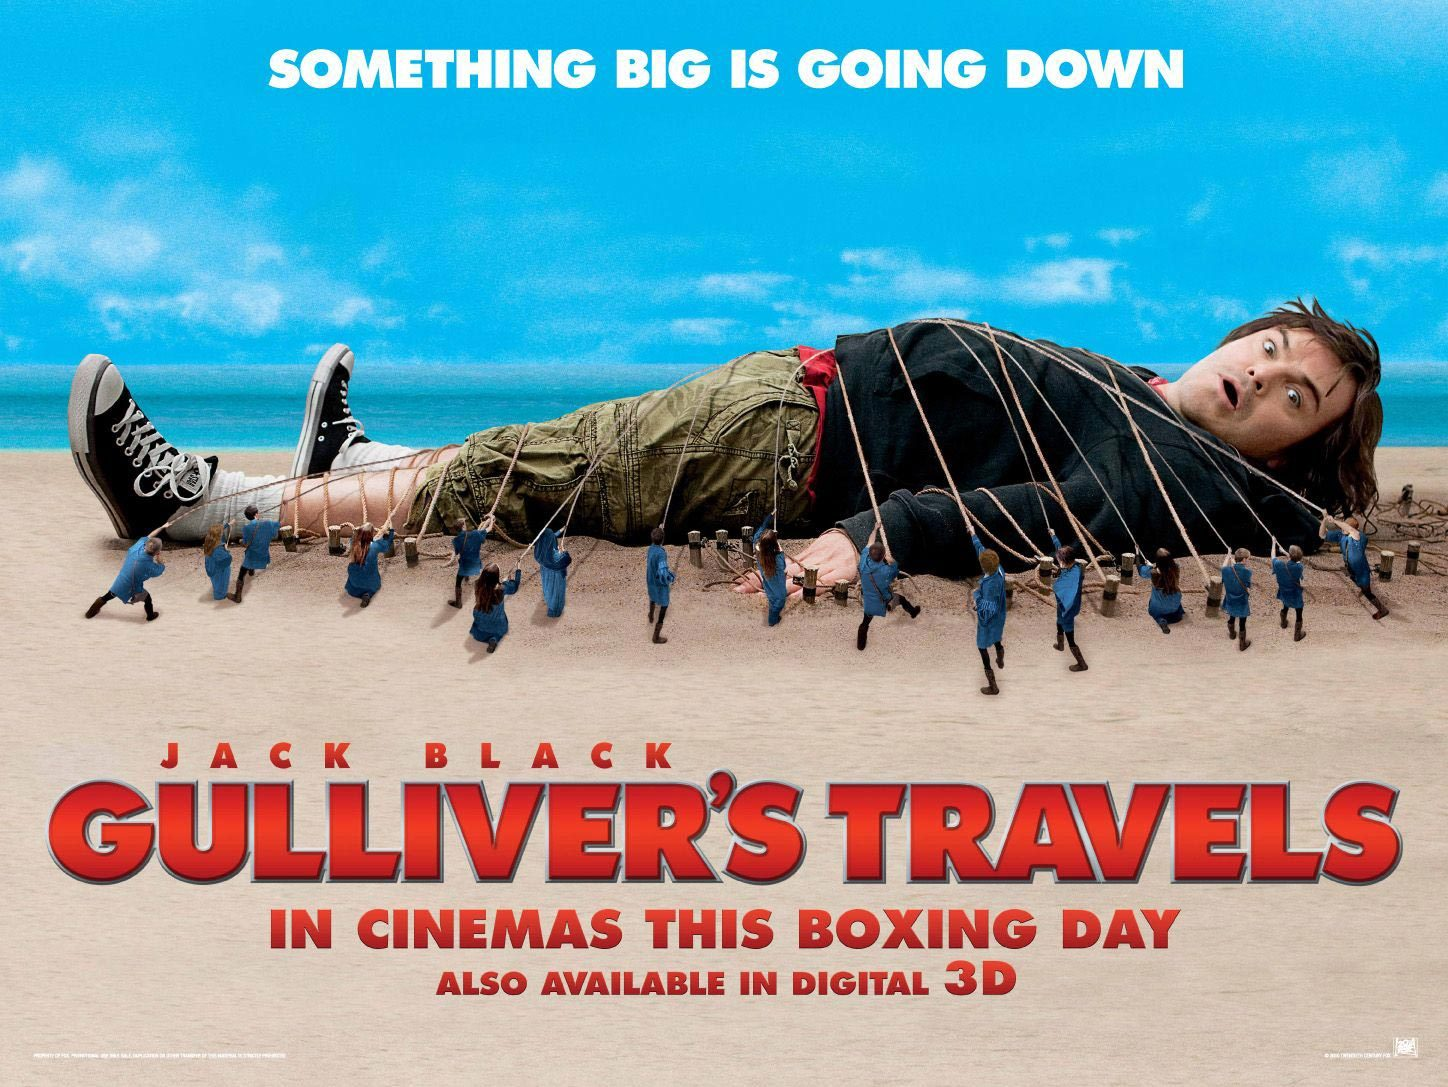 an analysis of the novel gullivers travels by swift In this day and age, we call this novel gulliver's travels, by jonathan swift but  back in the day it was called travels into several remote nations of the world.